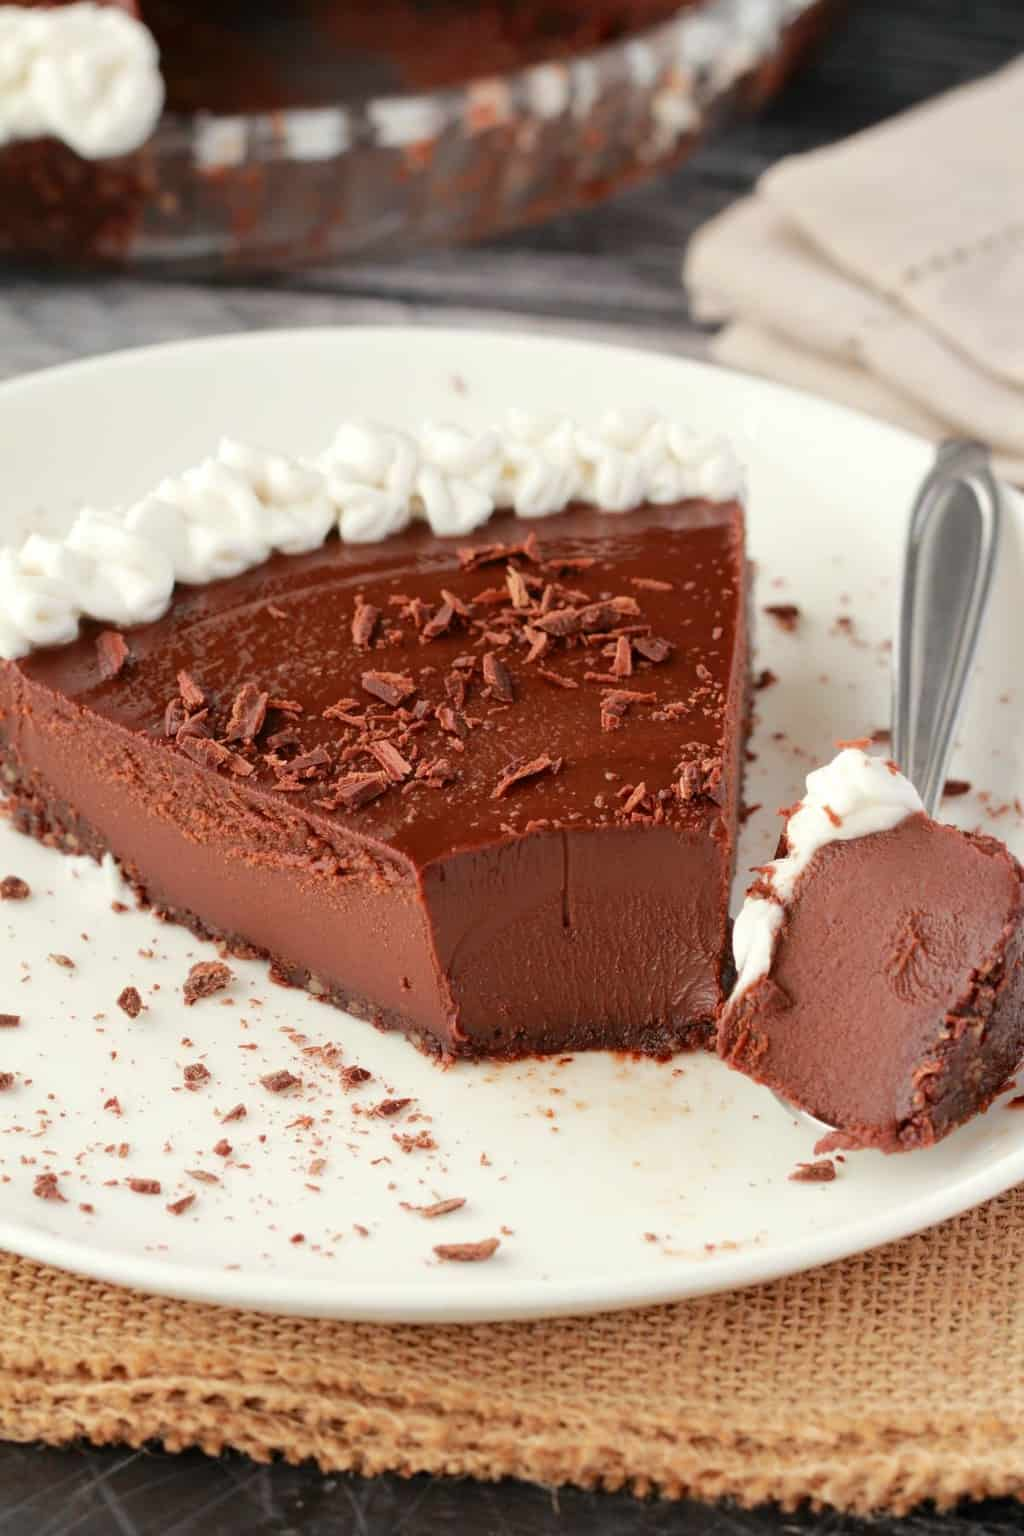 Vegan Chocolate Pie slice on a white plate. A bite-sized portion of pie on a spoon next to it.